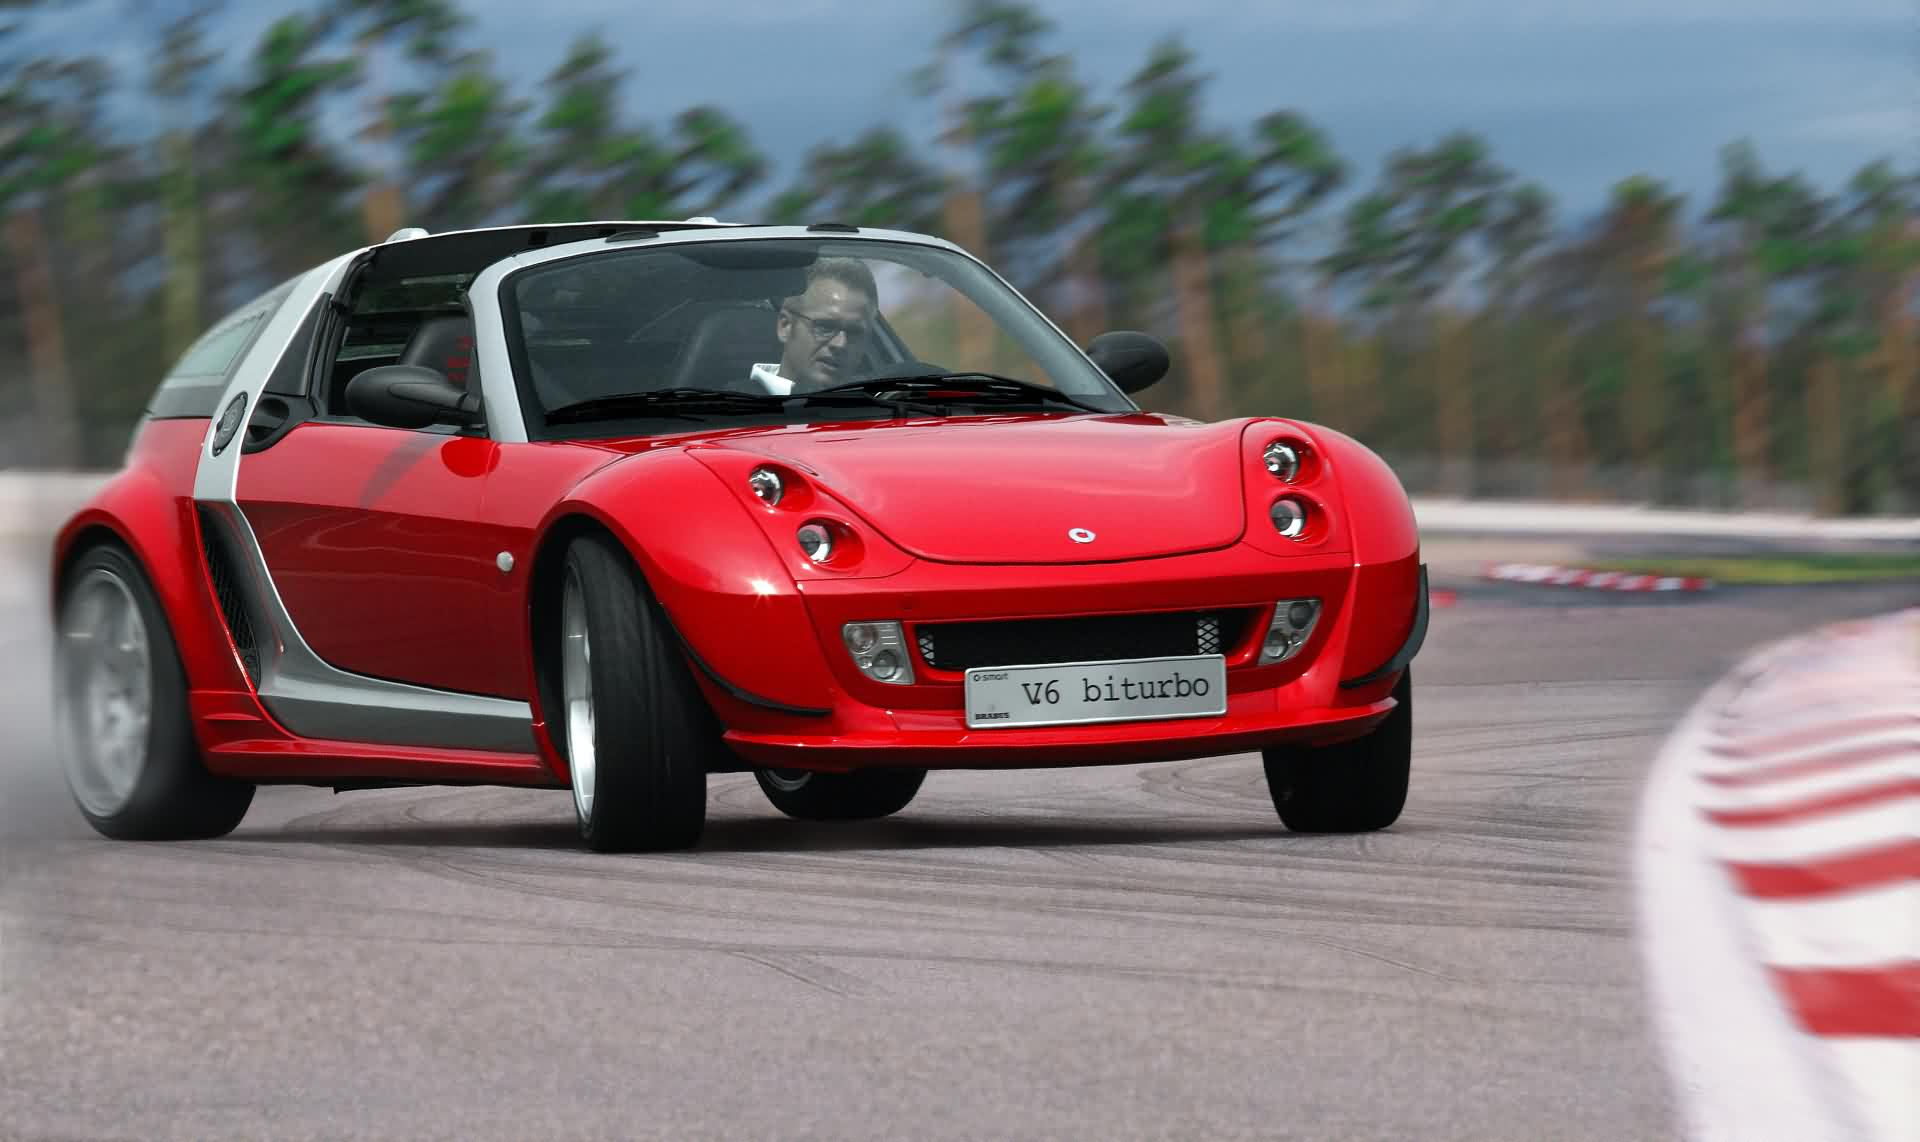 Smart Roadster Brabus V6 Biturbo